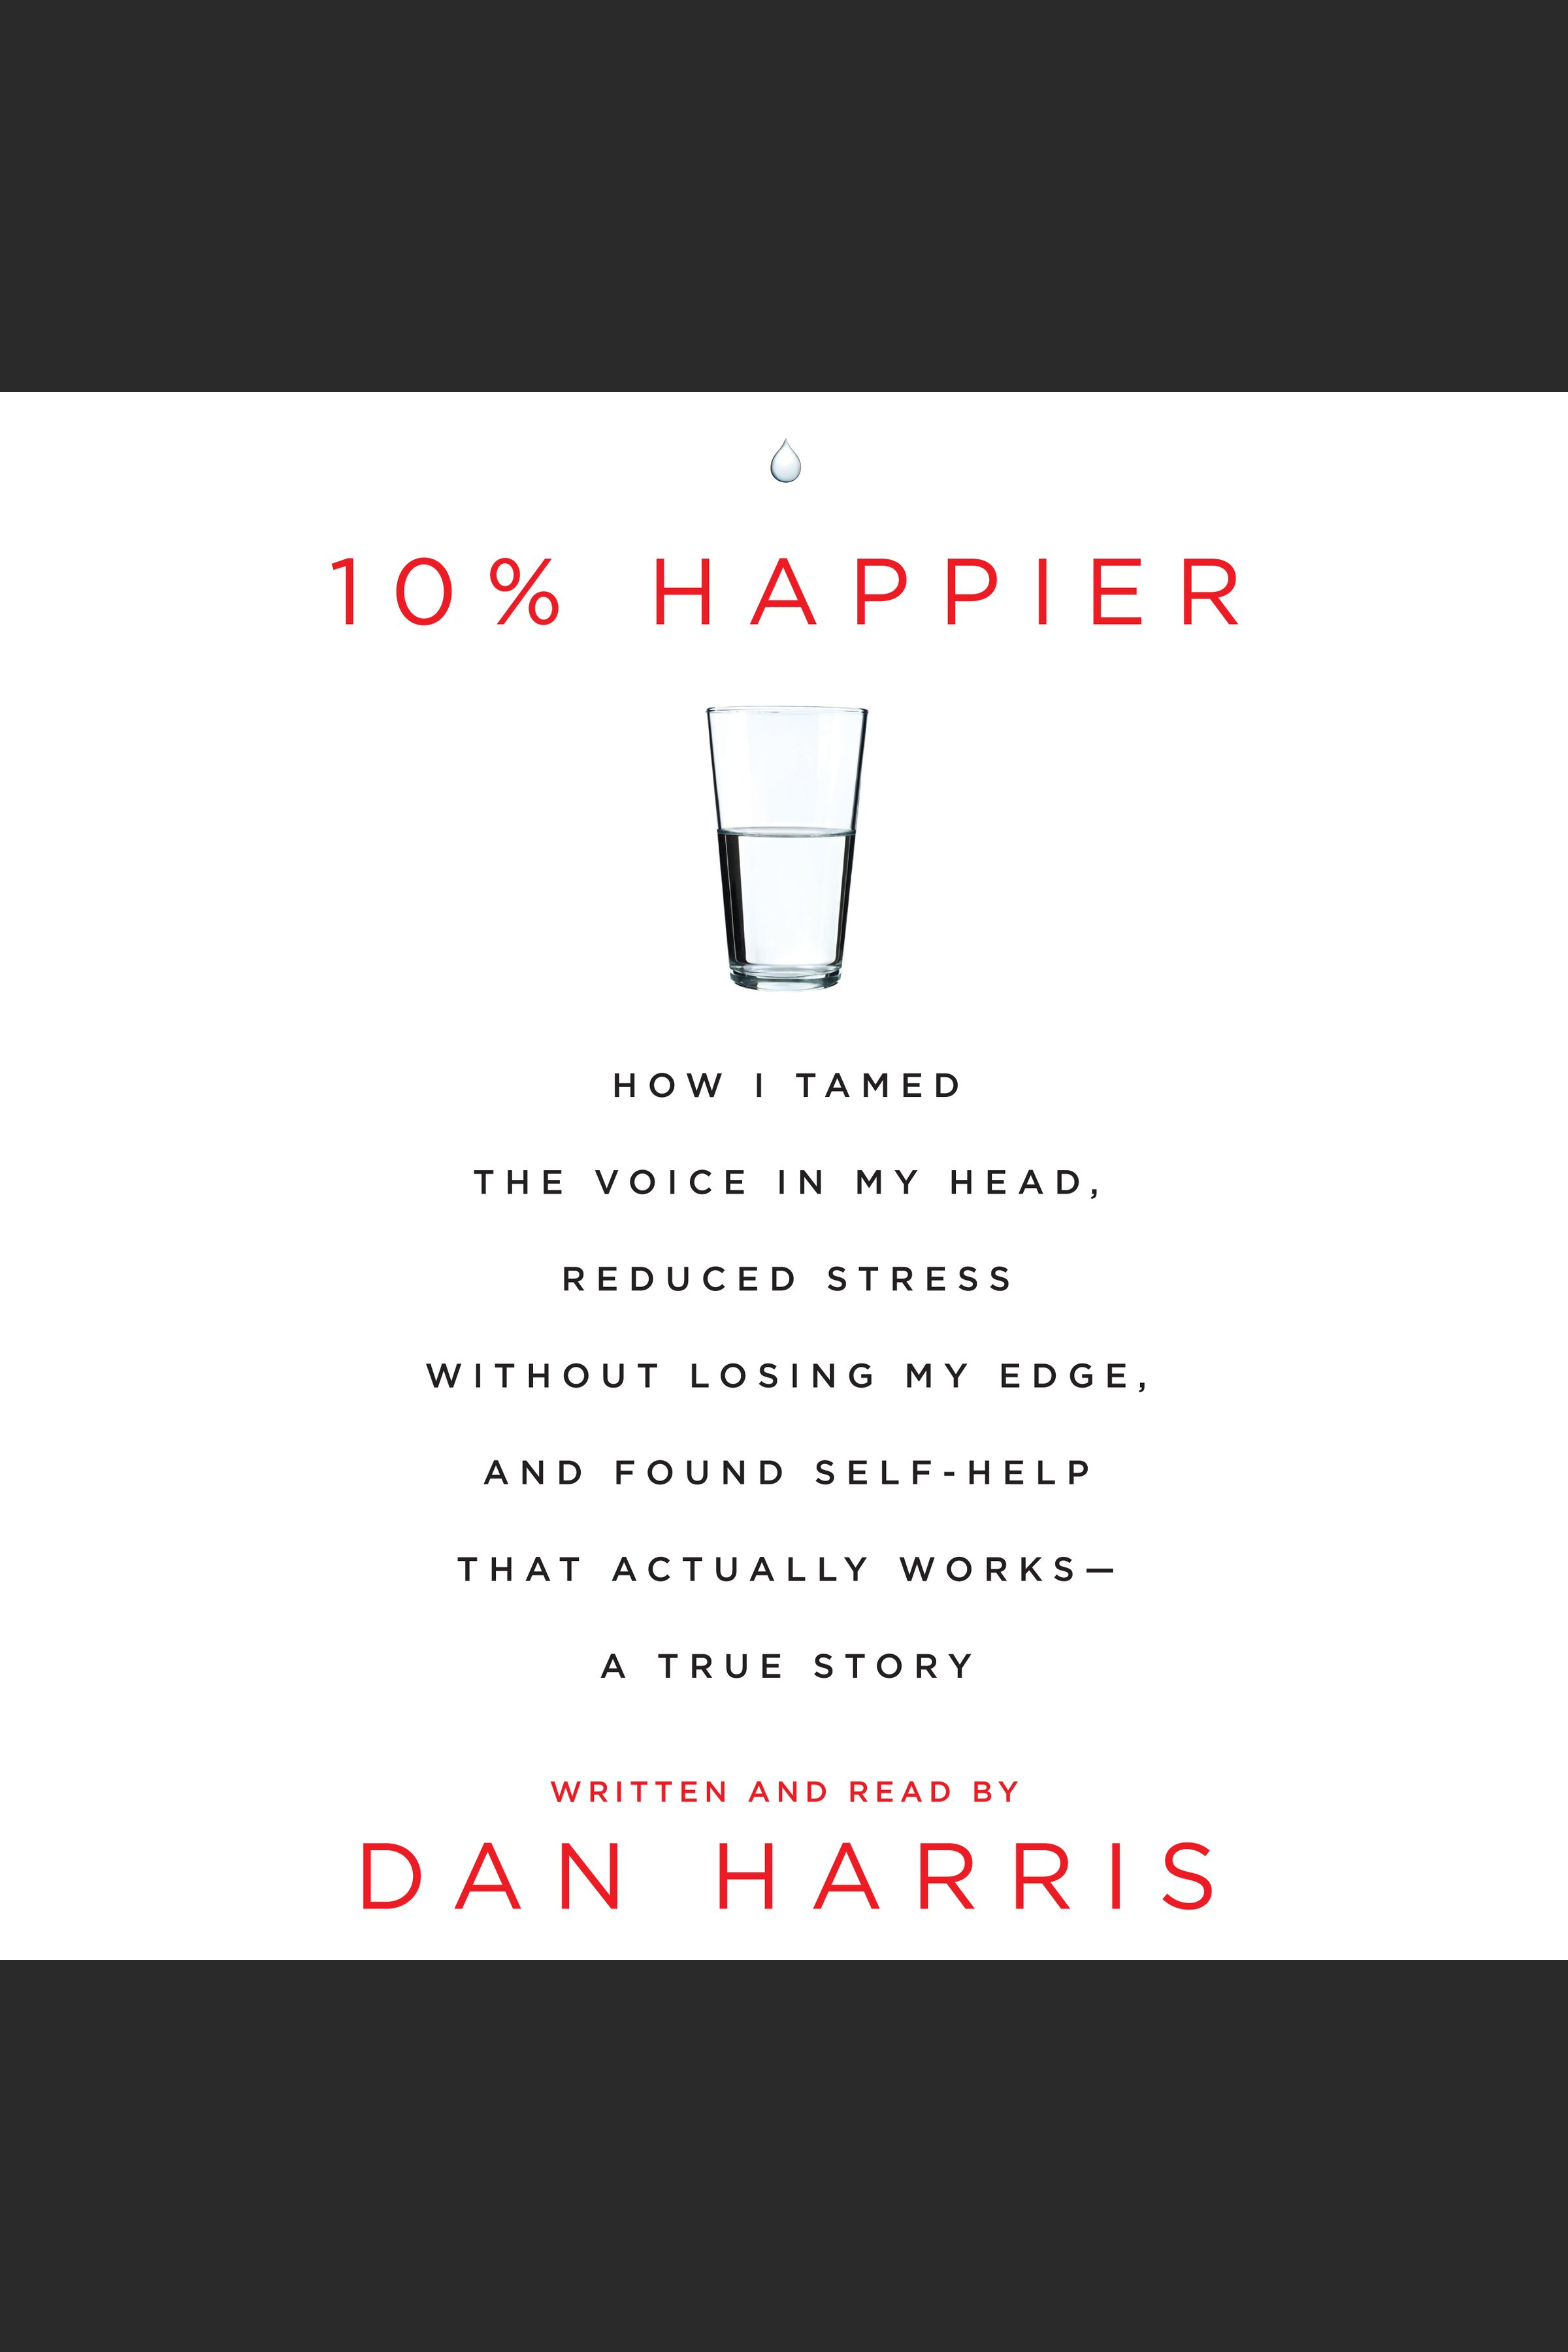 10% Happier How I Tamed the Voice in My Head, Reduced Stress Without Losing My Edge, and Found a Self-Help that Actually Works--A True Story